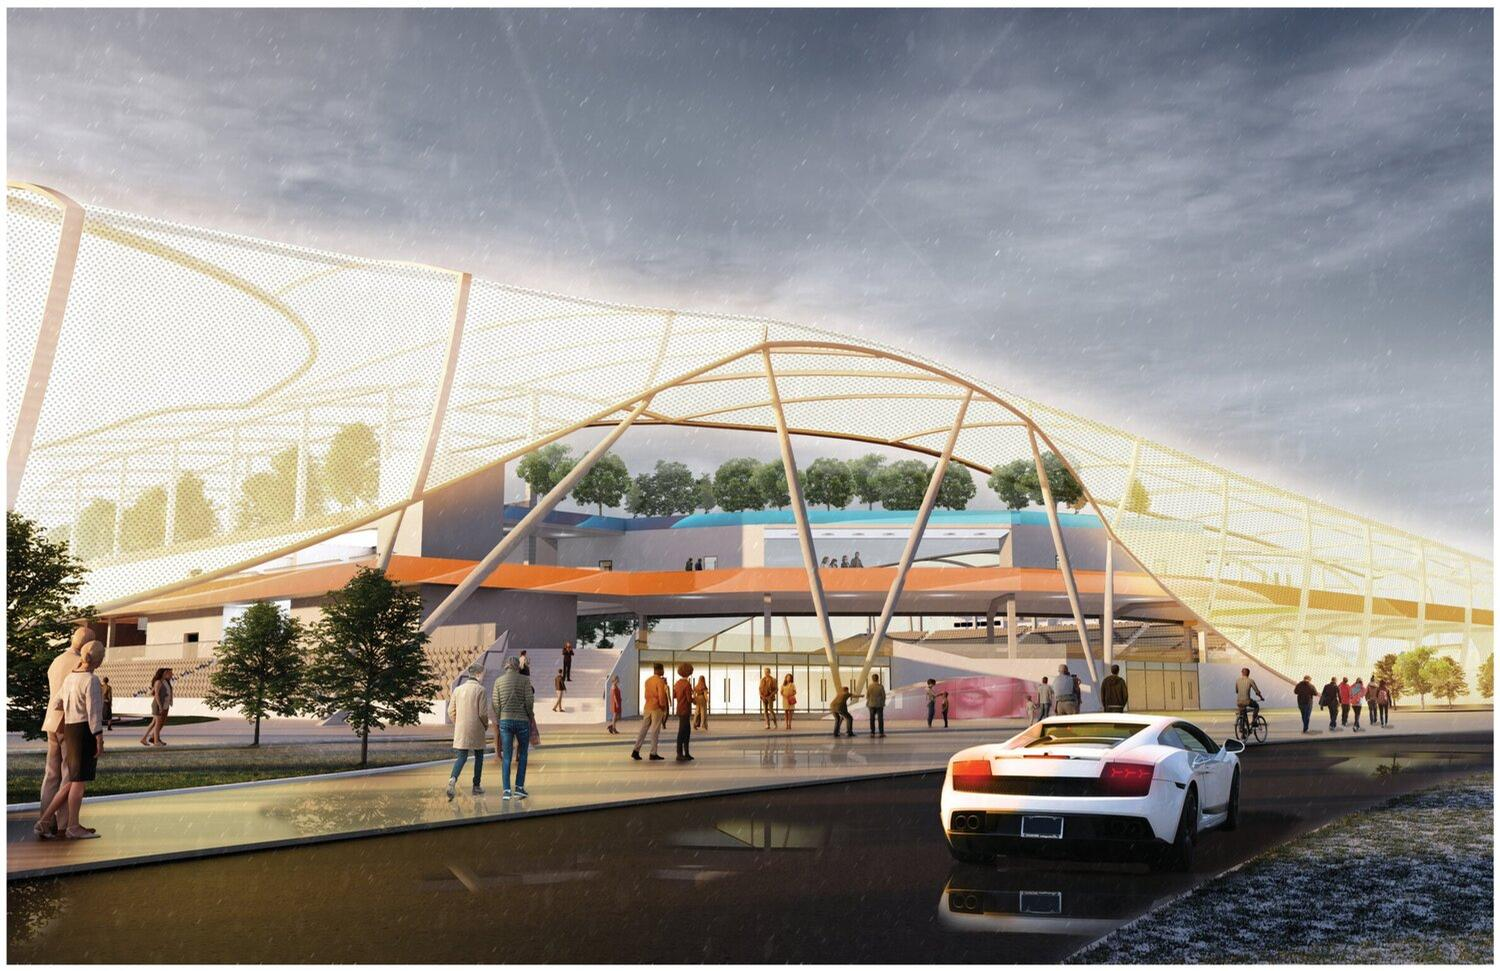 The inspiration for the overall aesthetic of the stadium is 'contextual fluidity' / Pendulum